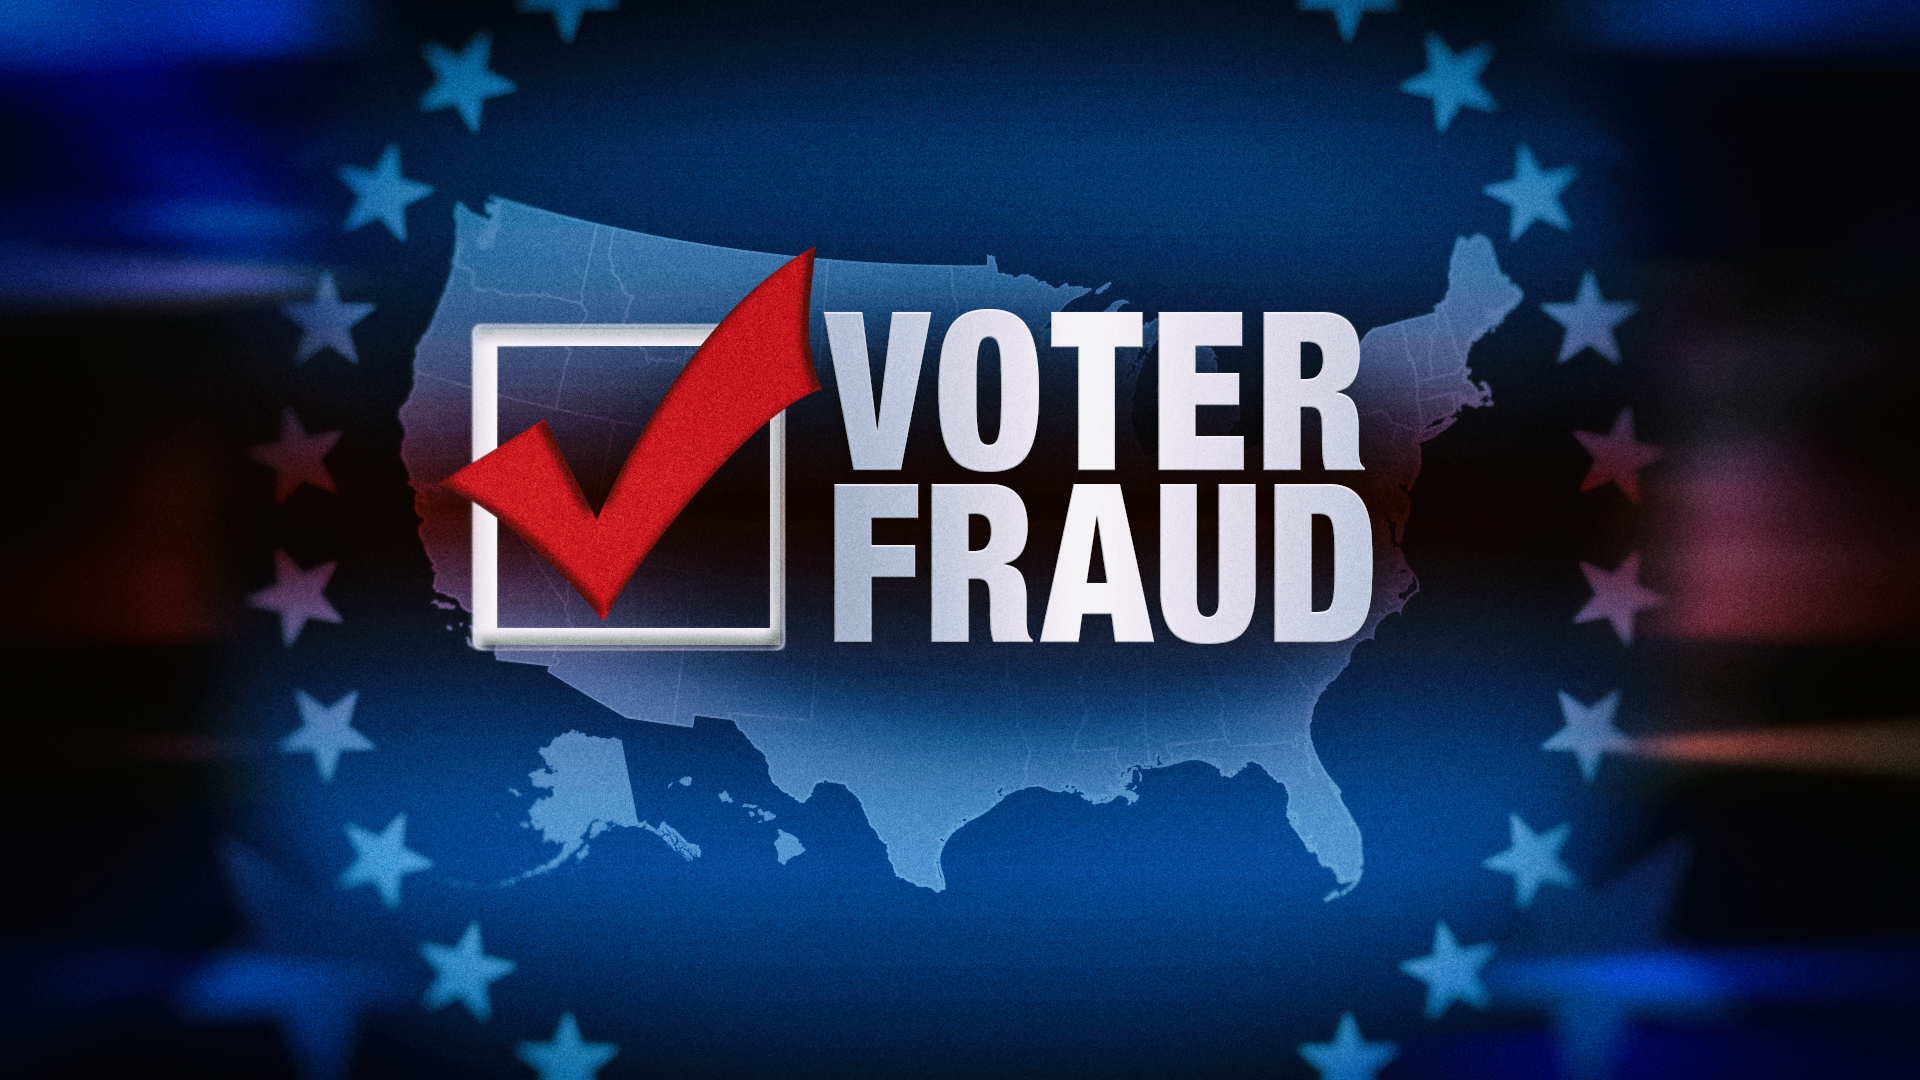 voter fraud forgery election voting_287503